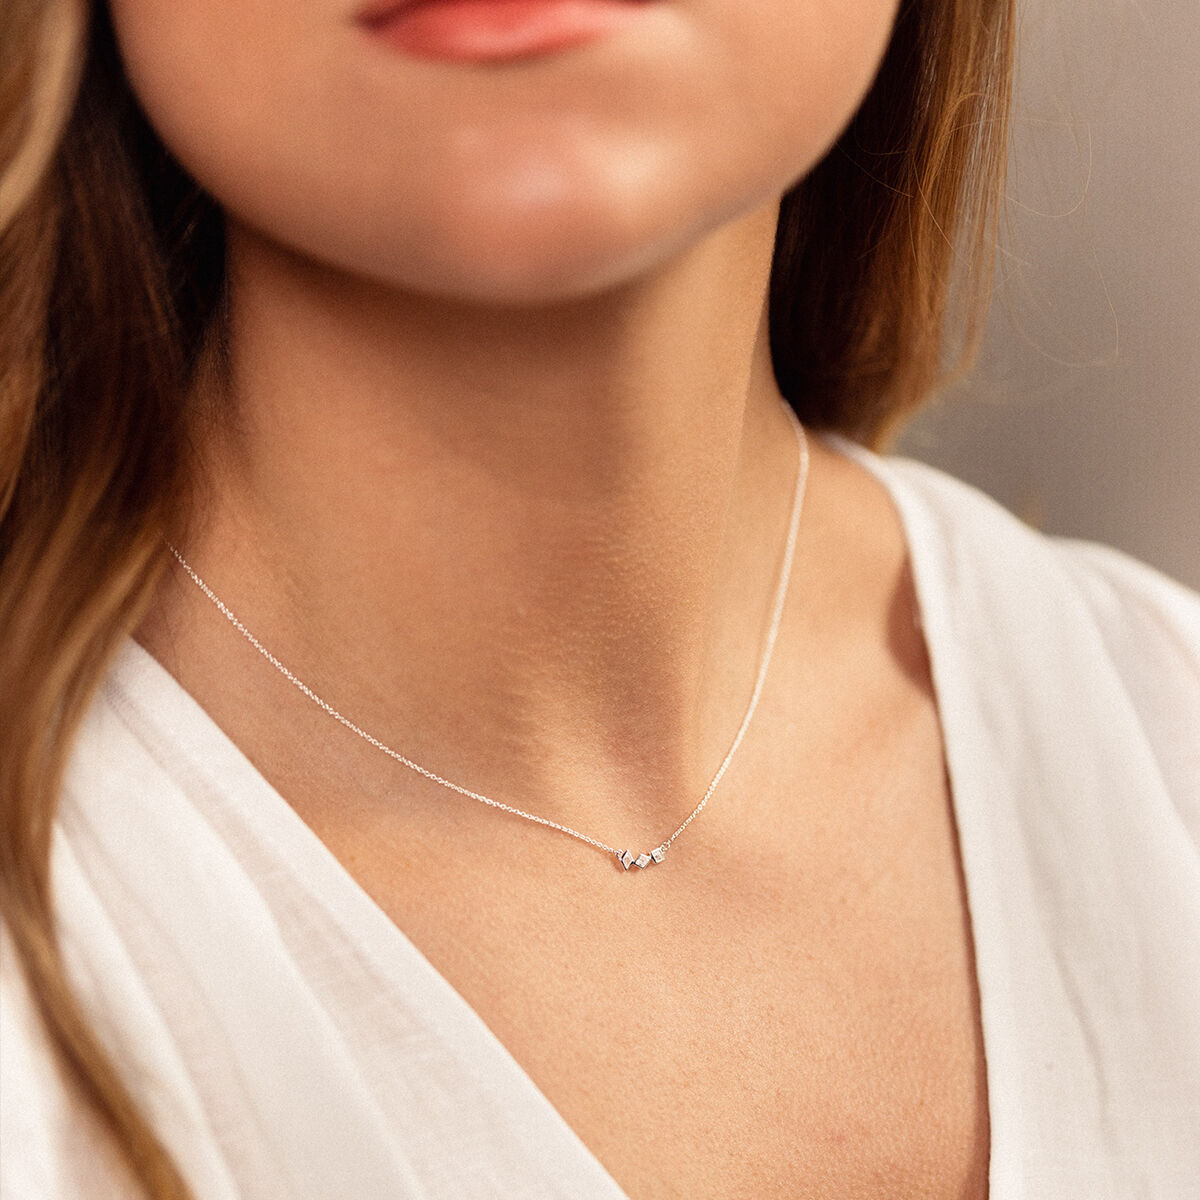 Perfectly Imperfect Necklace